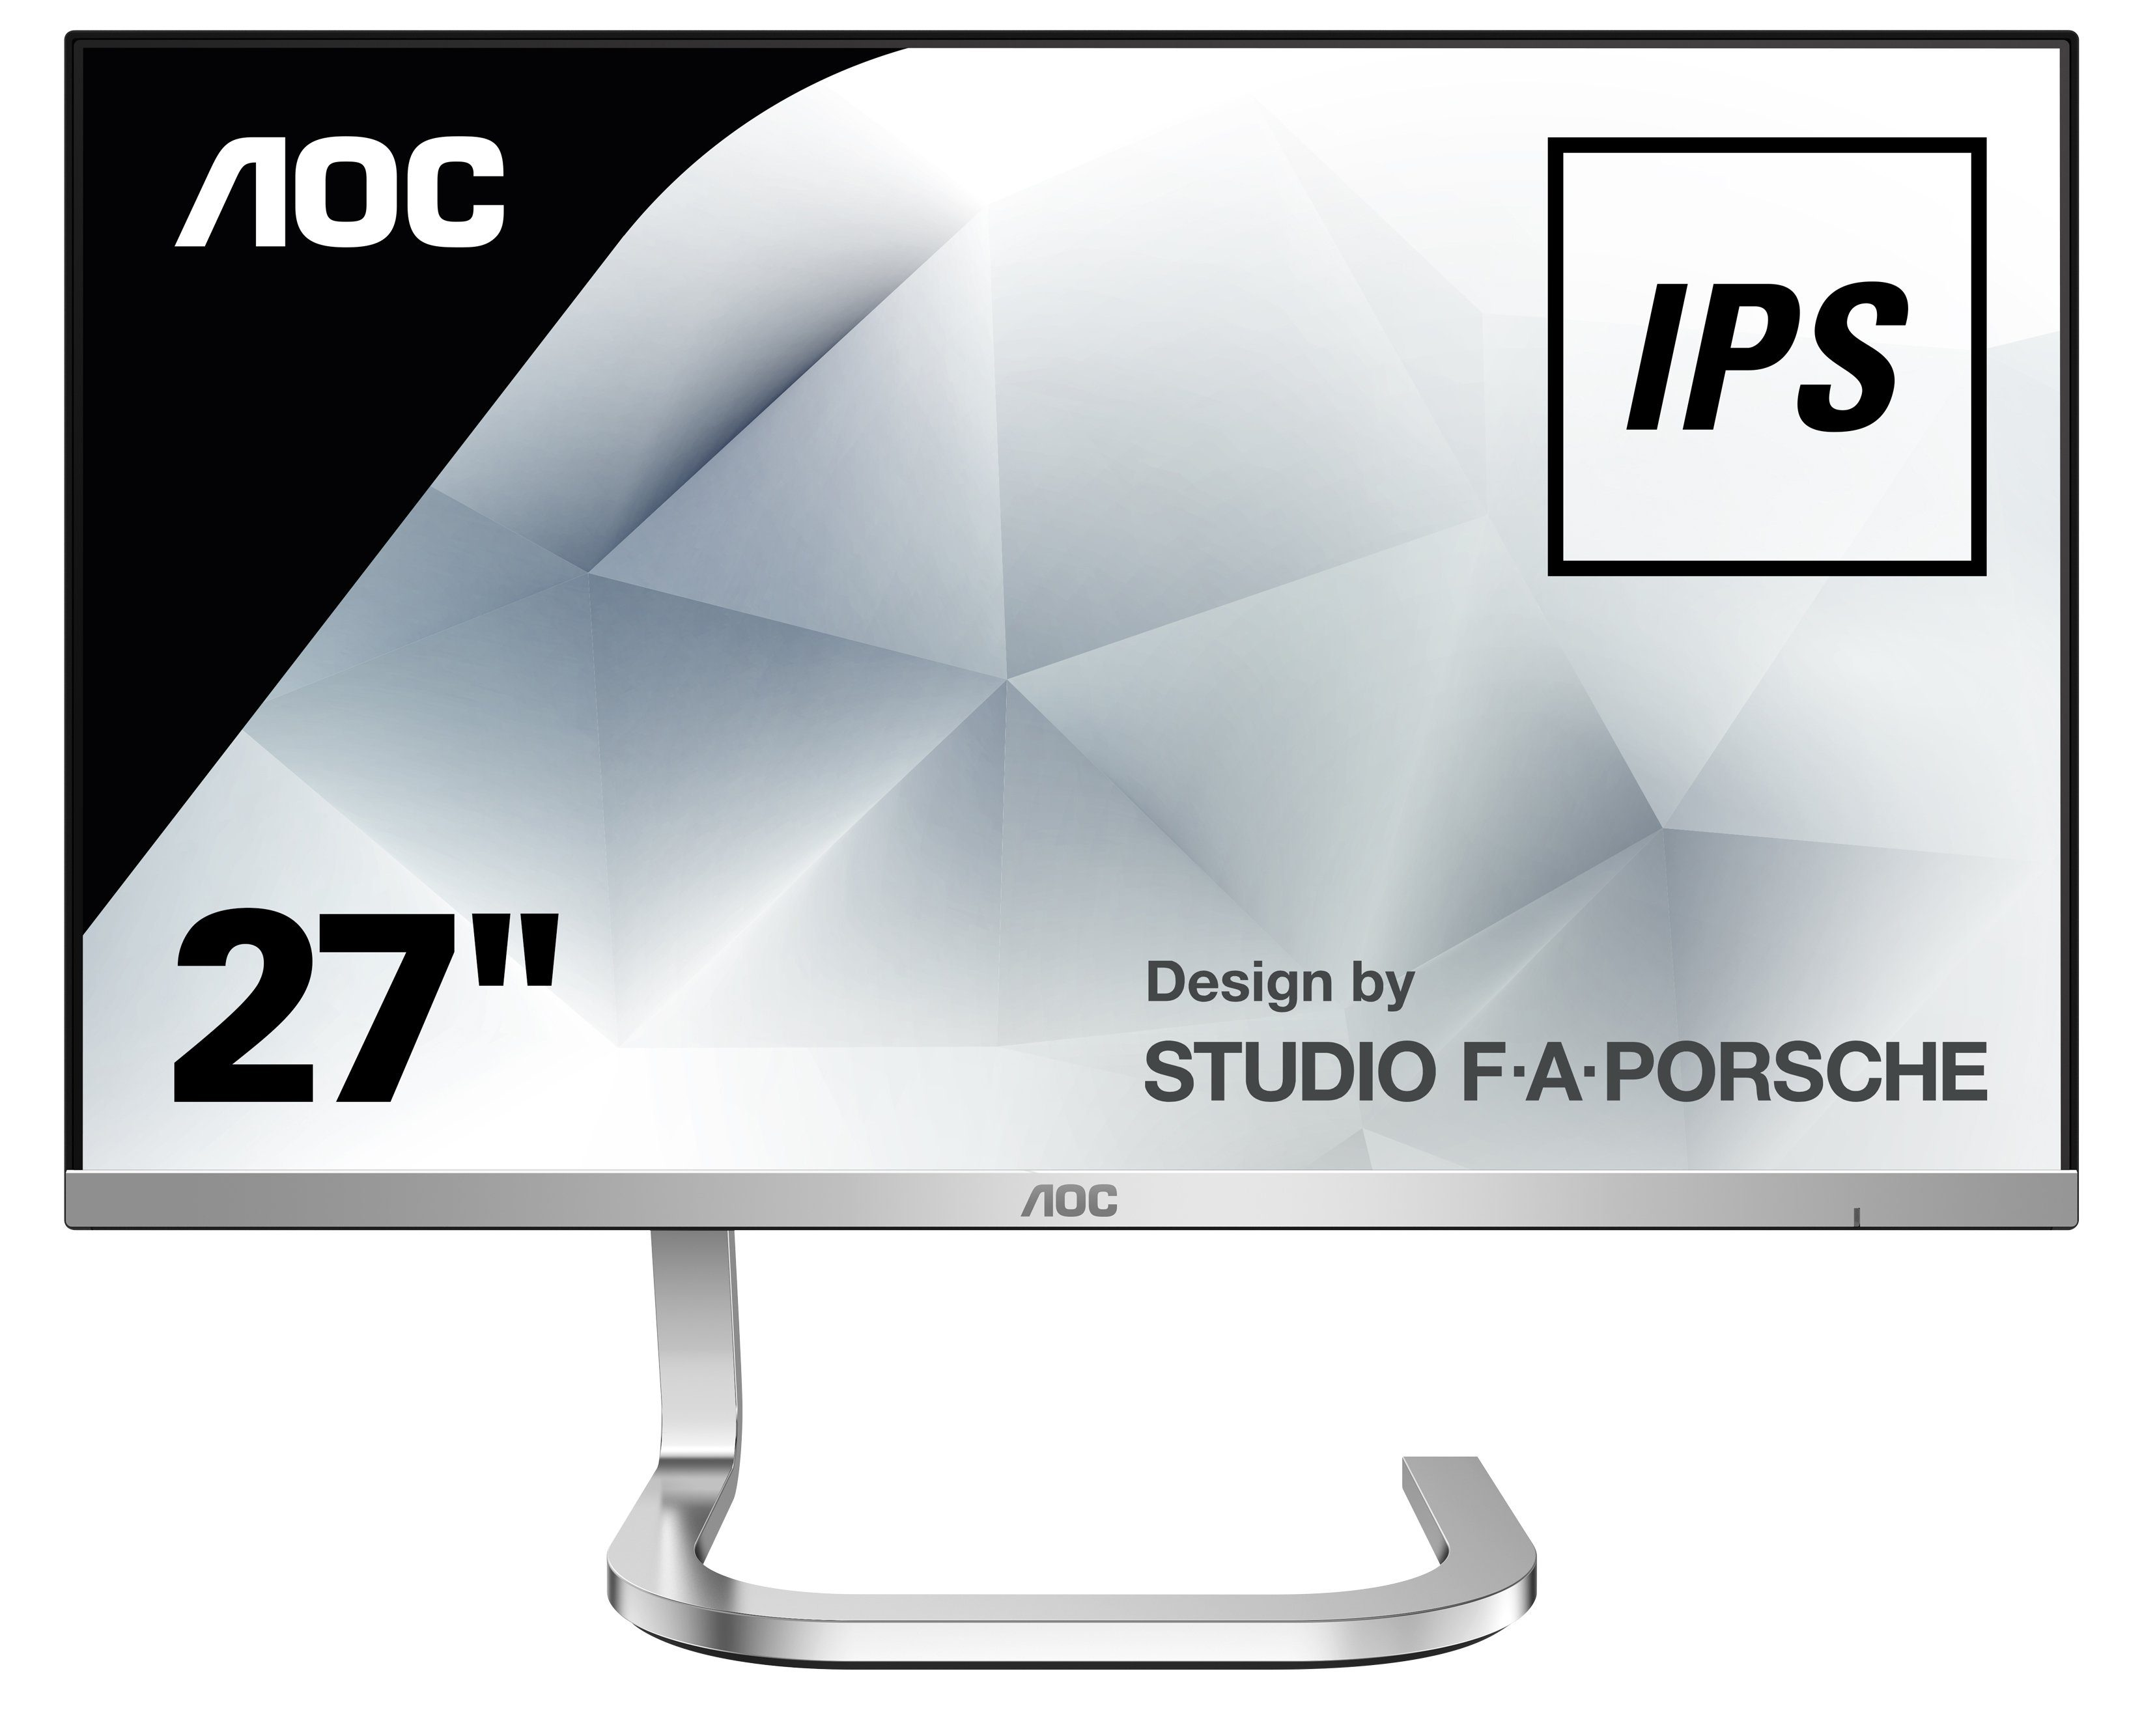 AOC Full HD Porsche Design Monitor 68,6cm 27 Zoll »PDS271«